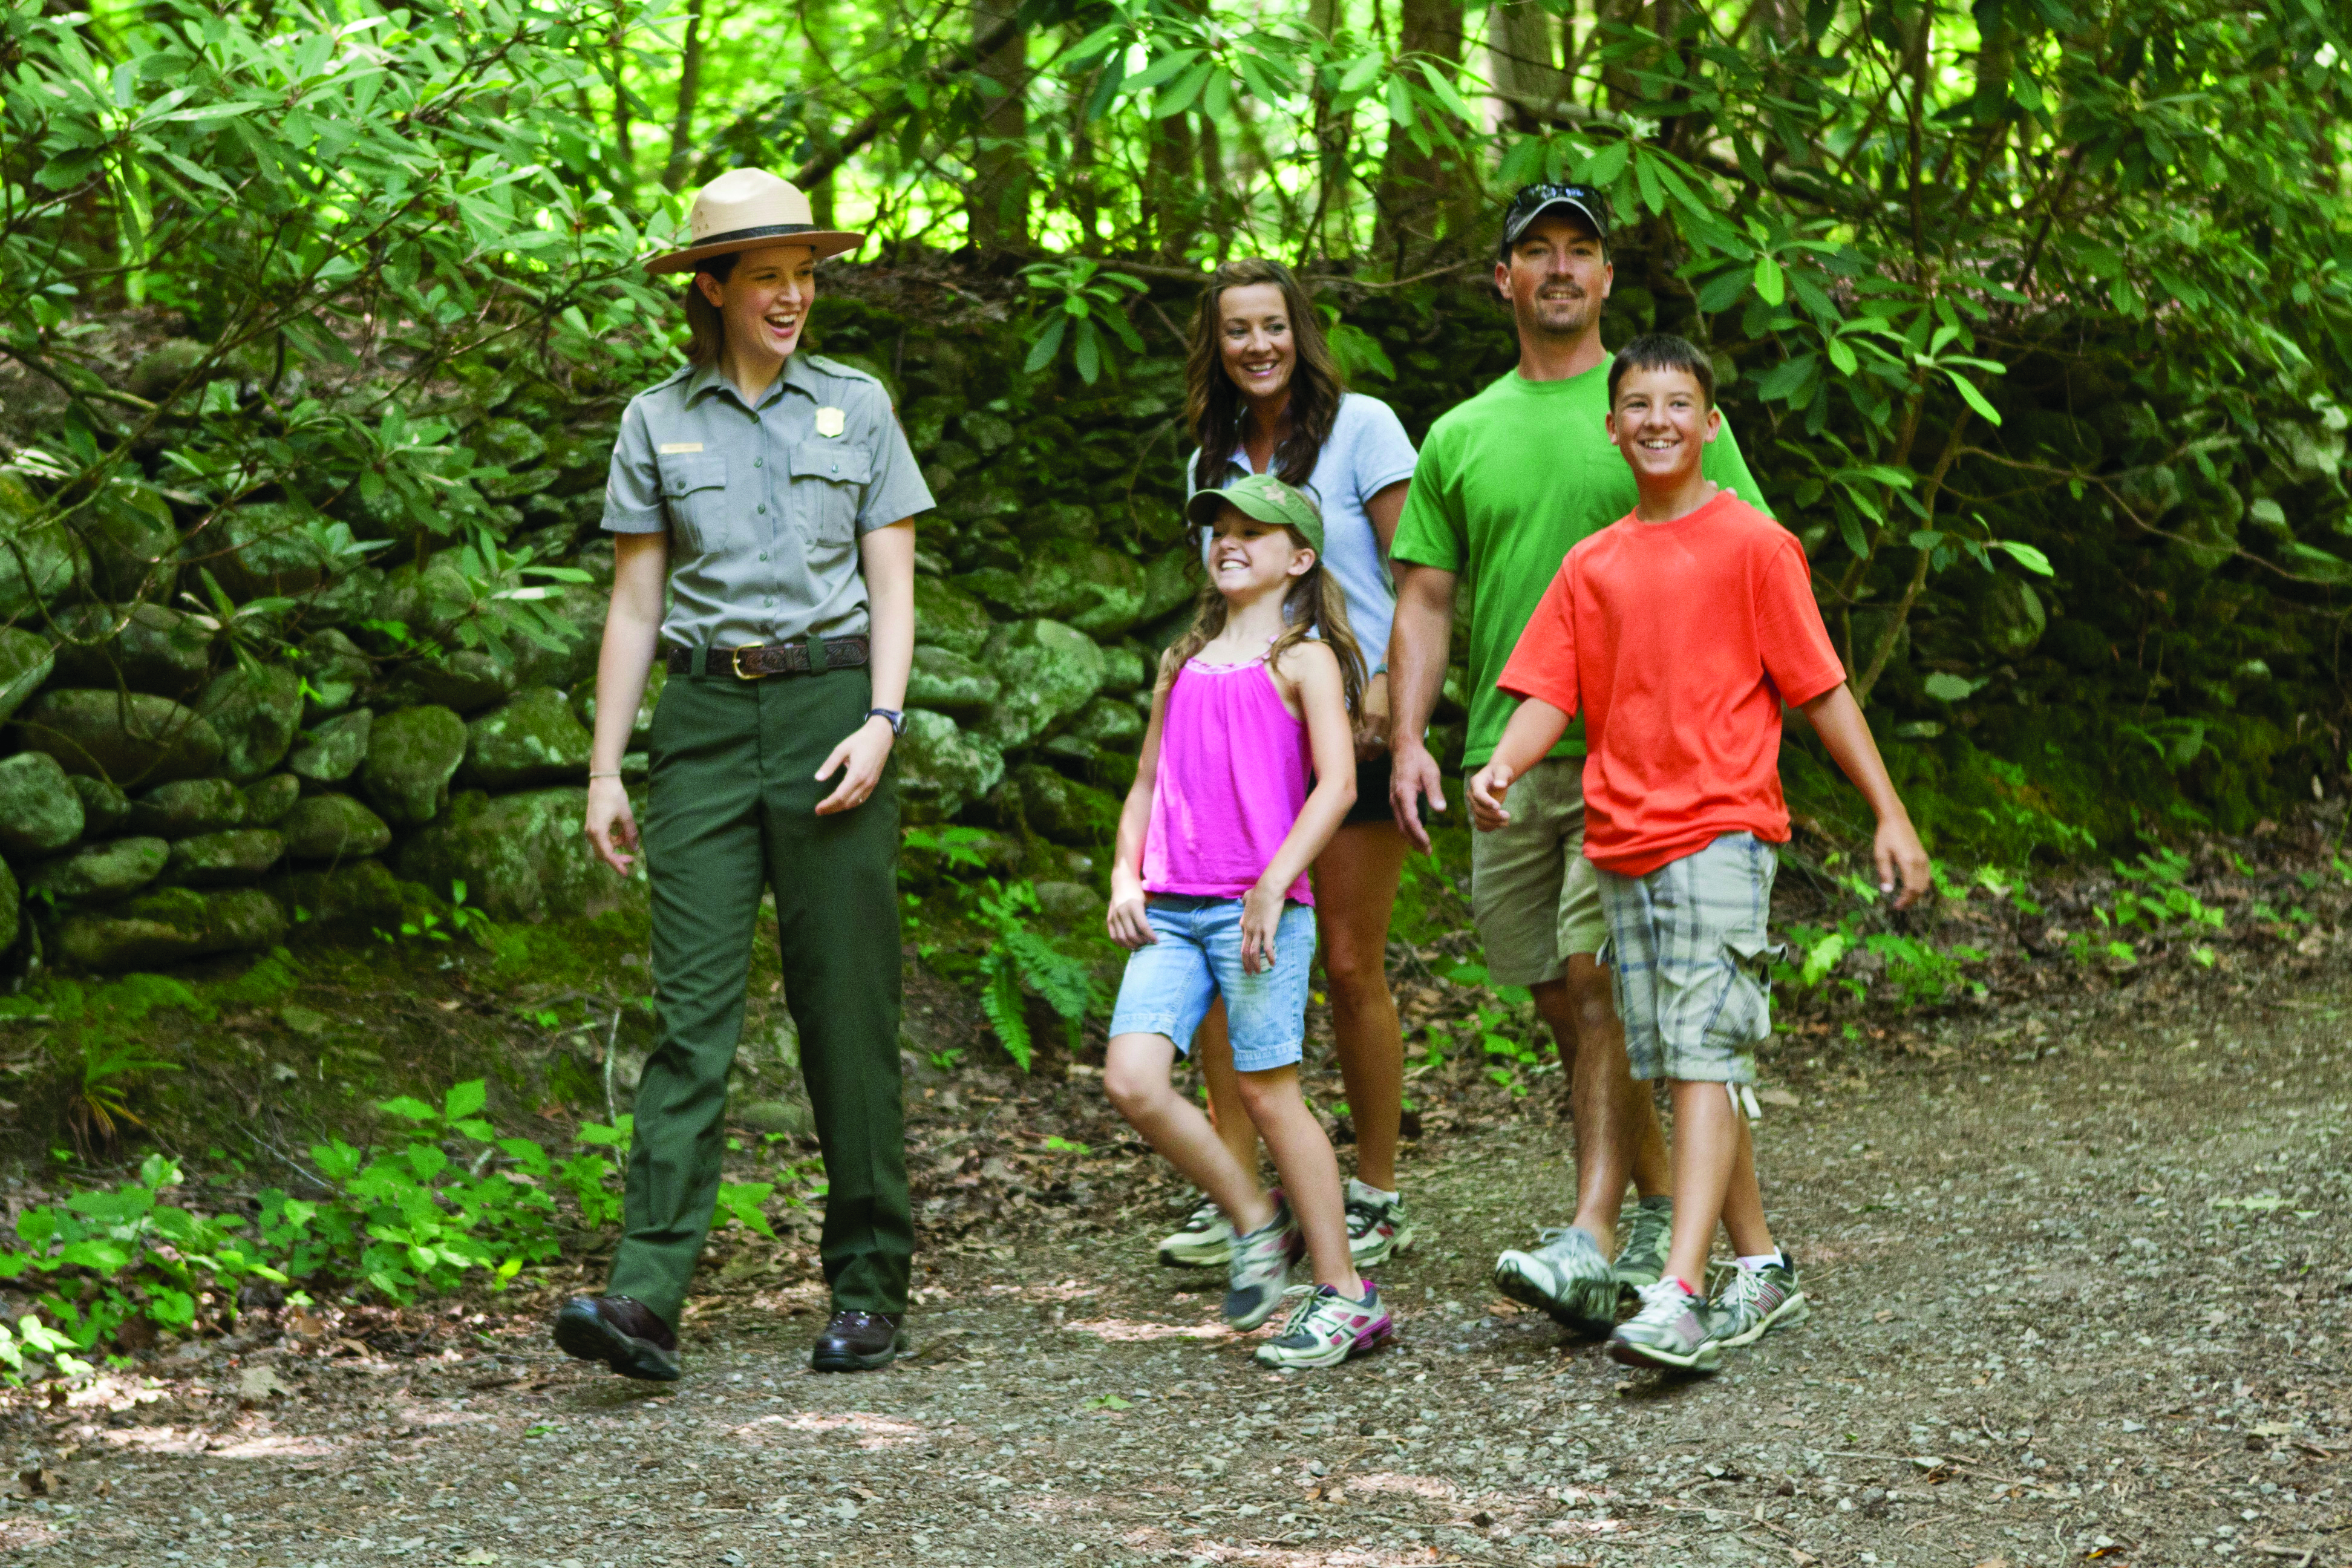 Ranger Caitlin Worth, acting management assistant at Great Smoky Mountains National Park, answers visitor questions and helps them plan their activities. Photo courtesy of NPS.